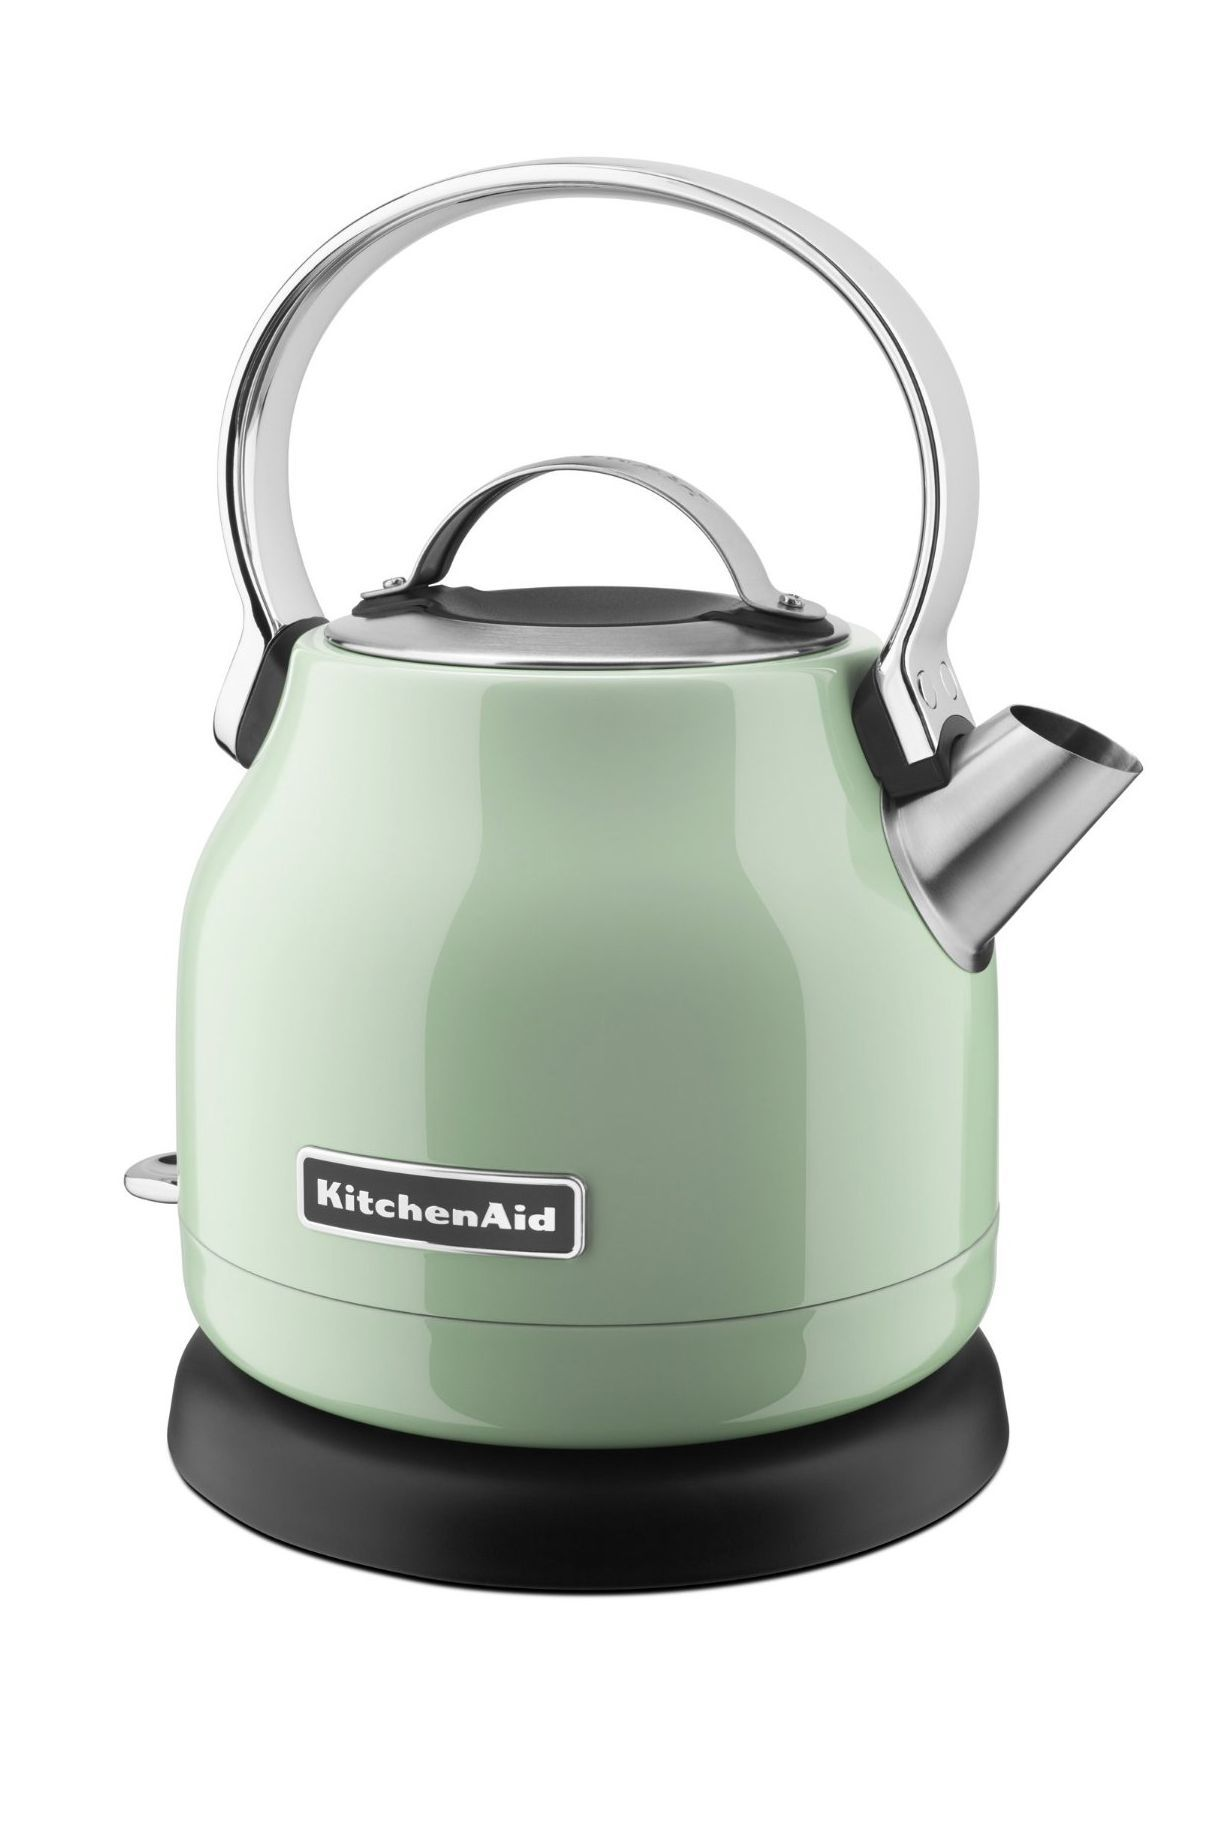 Kitchenaid mixers are on major sale right now just in